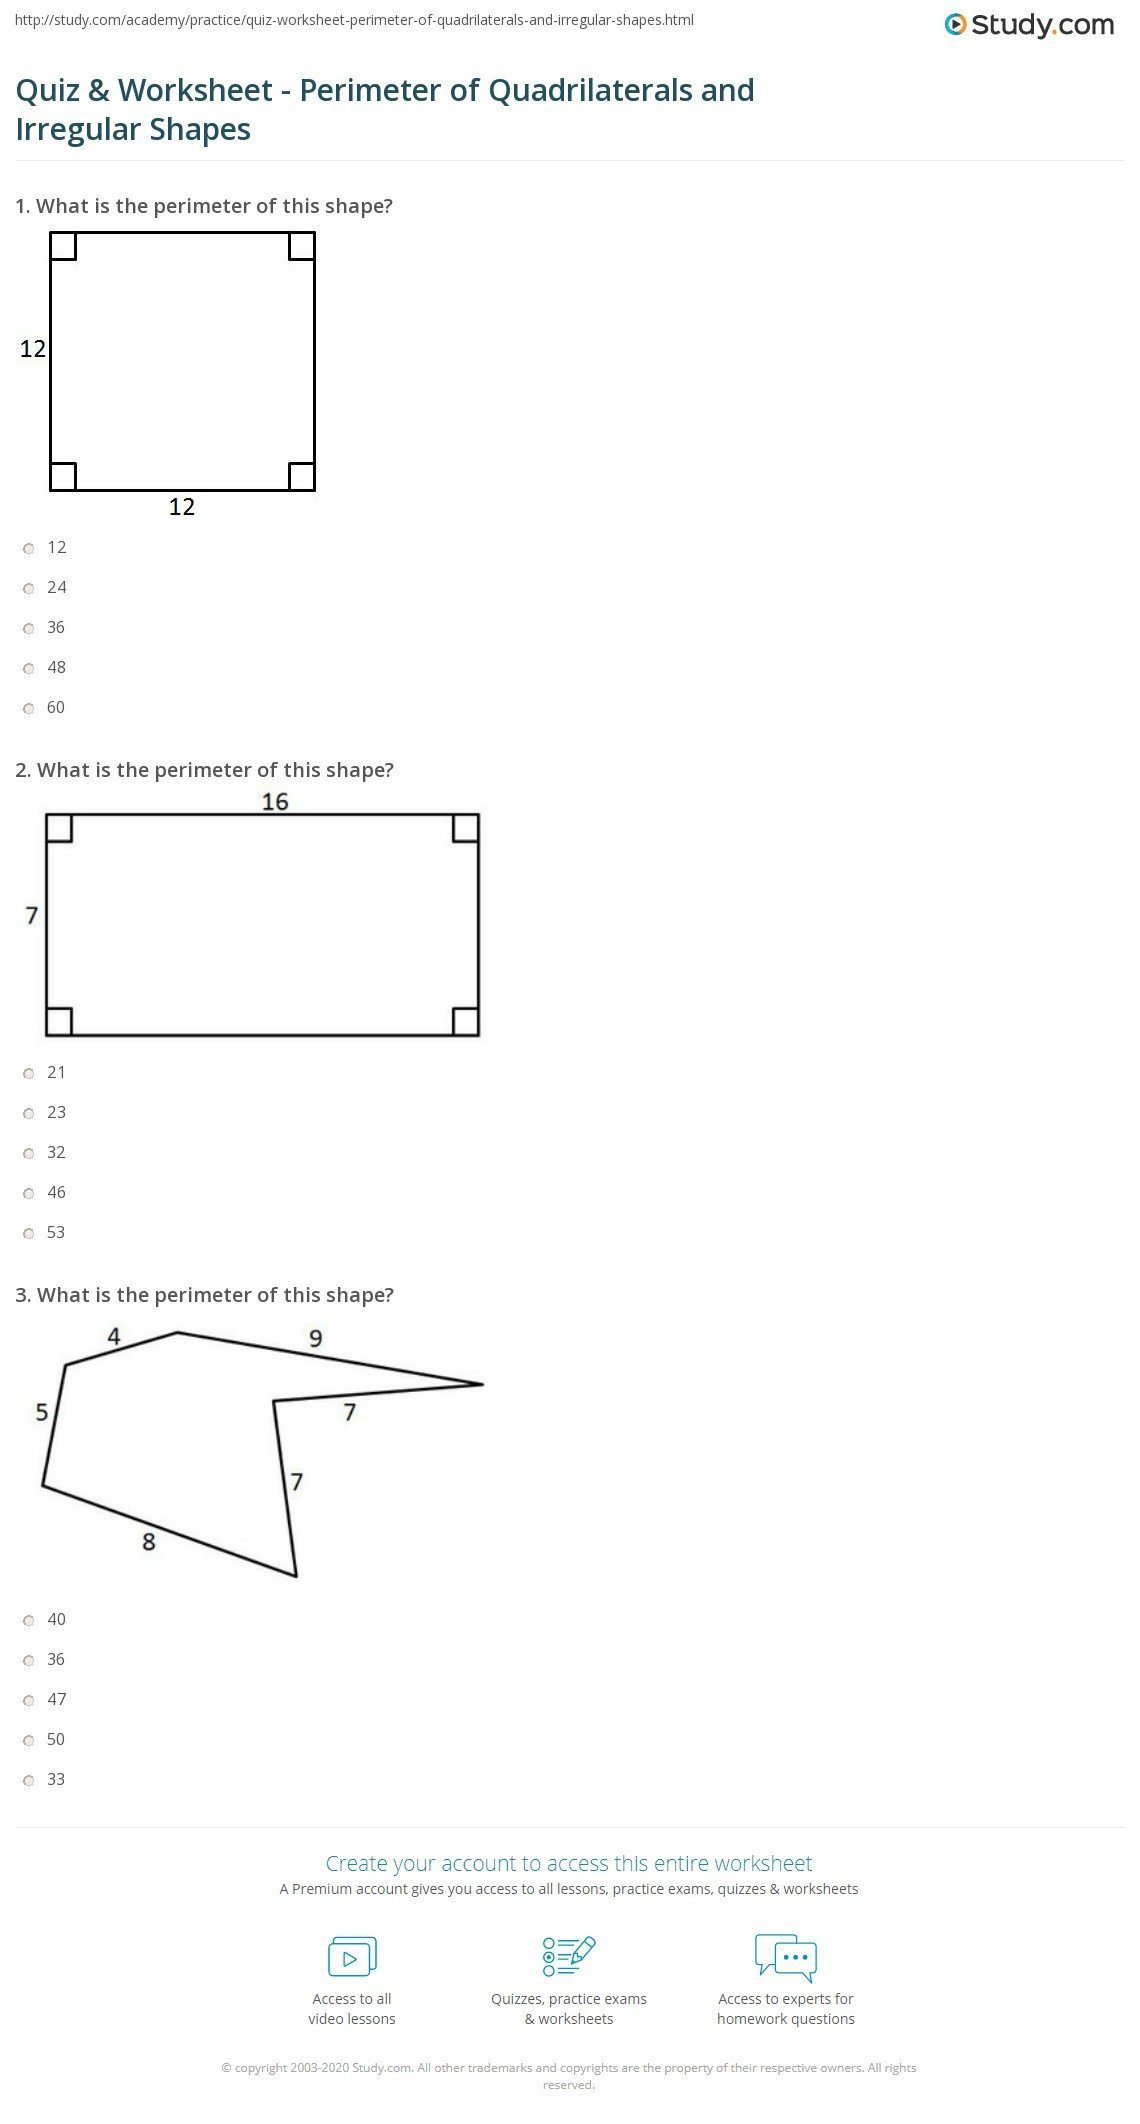 Area Irregular Shapes Worksheet Quiz & Worksheet Perimeter Of Quadrilaterals and Irregular